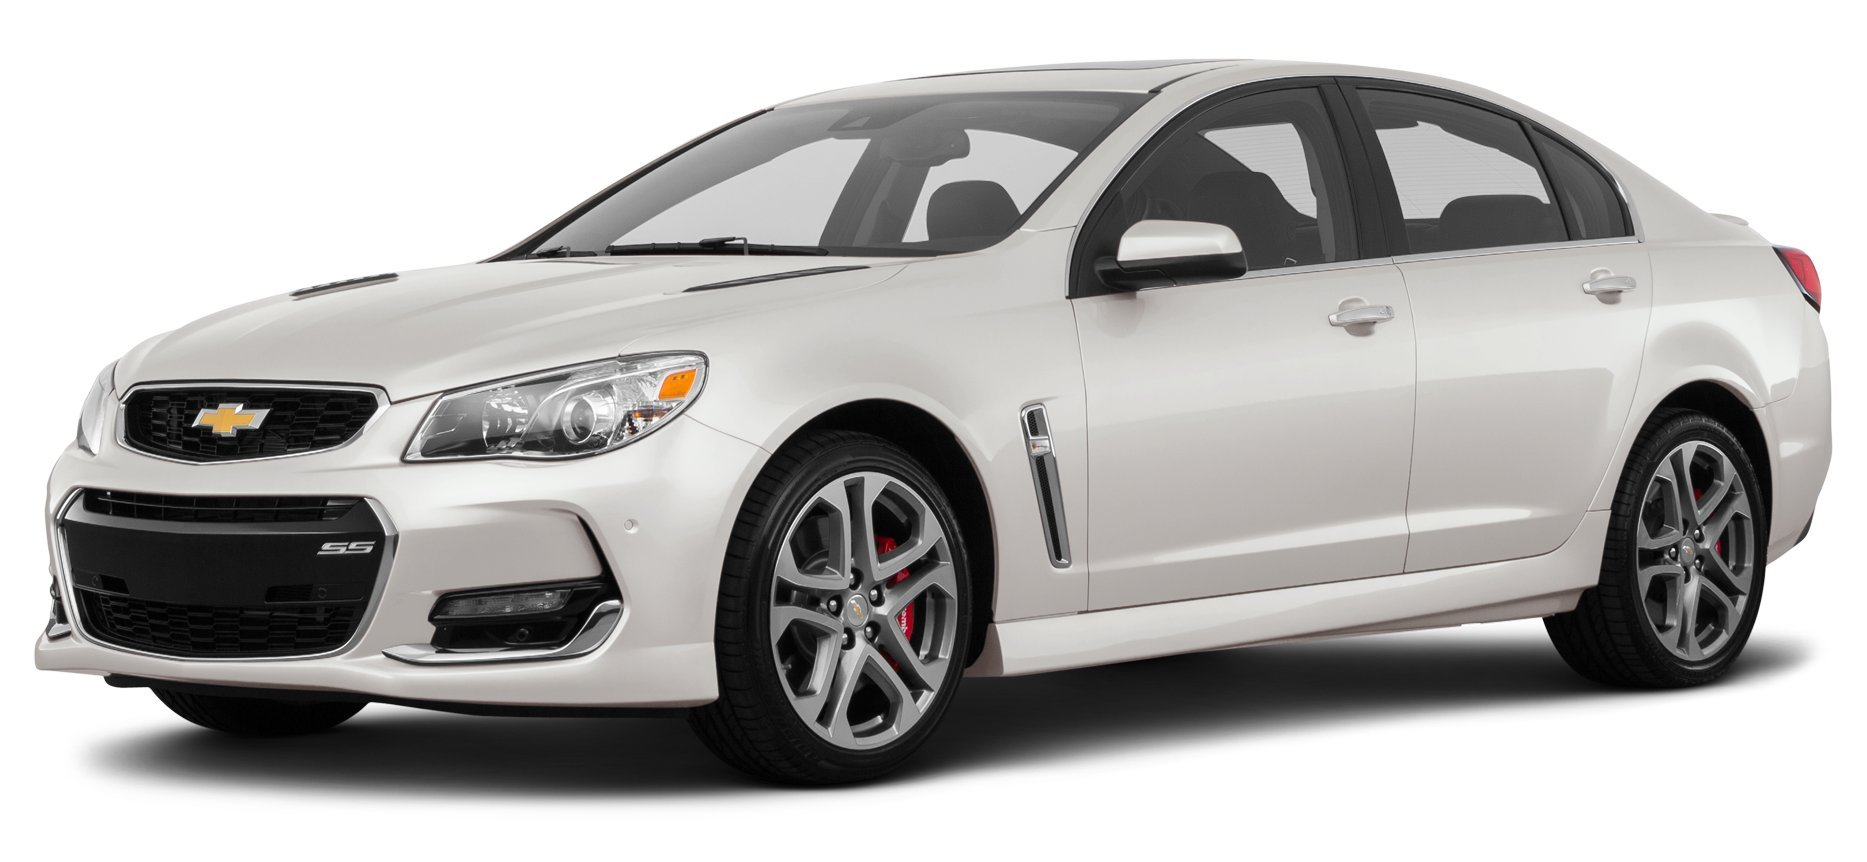 Amazon Com Chevrolet Ss Reviews Images And Specs Vehicles